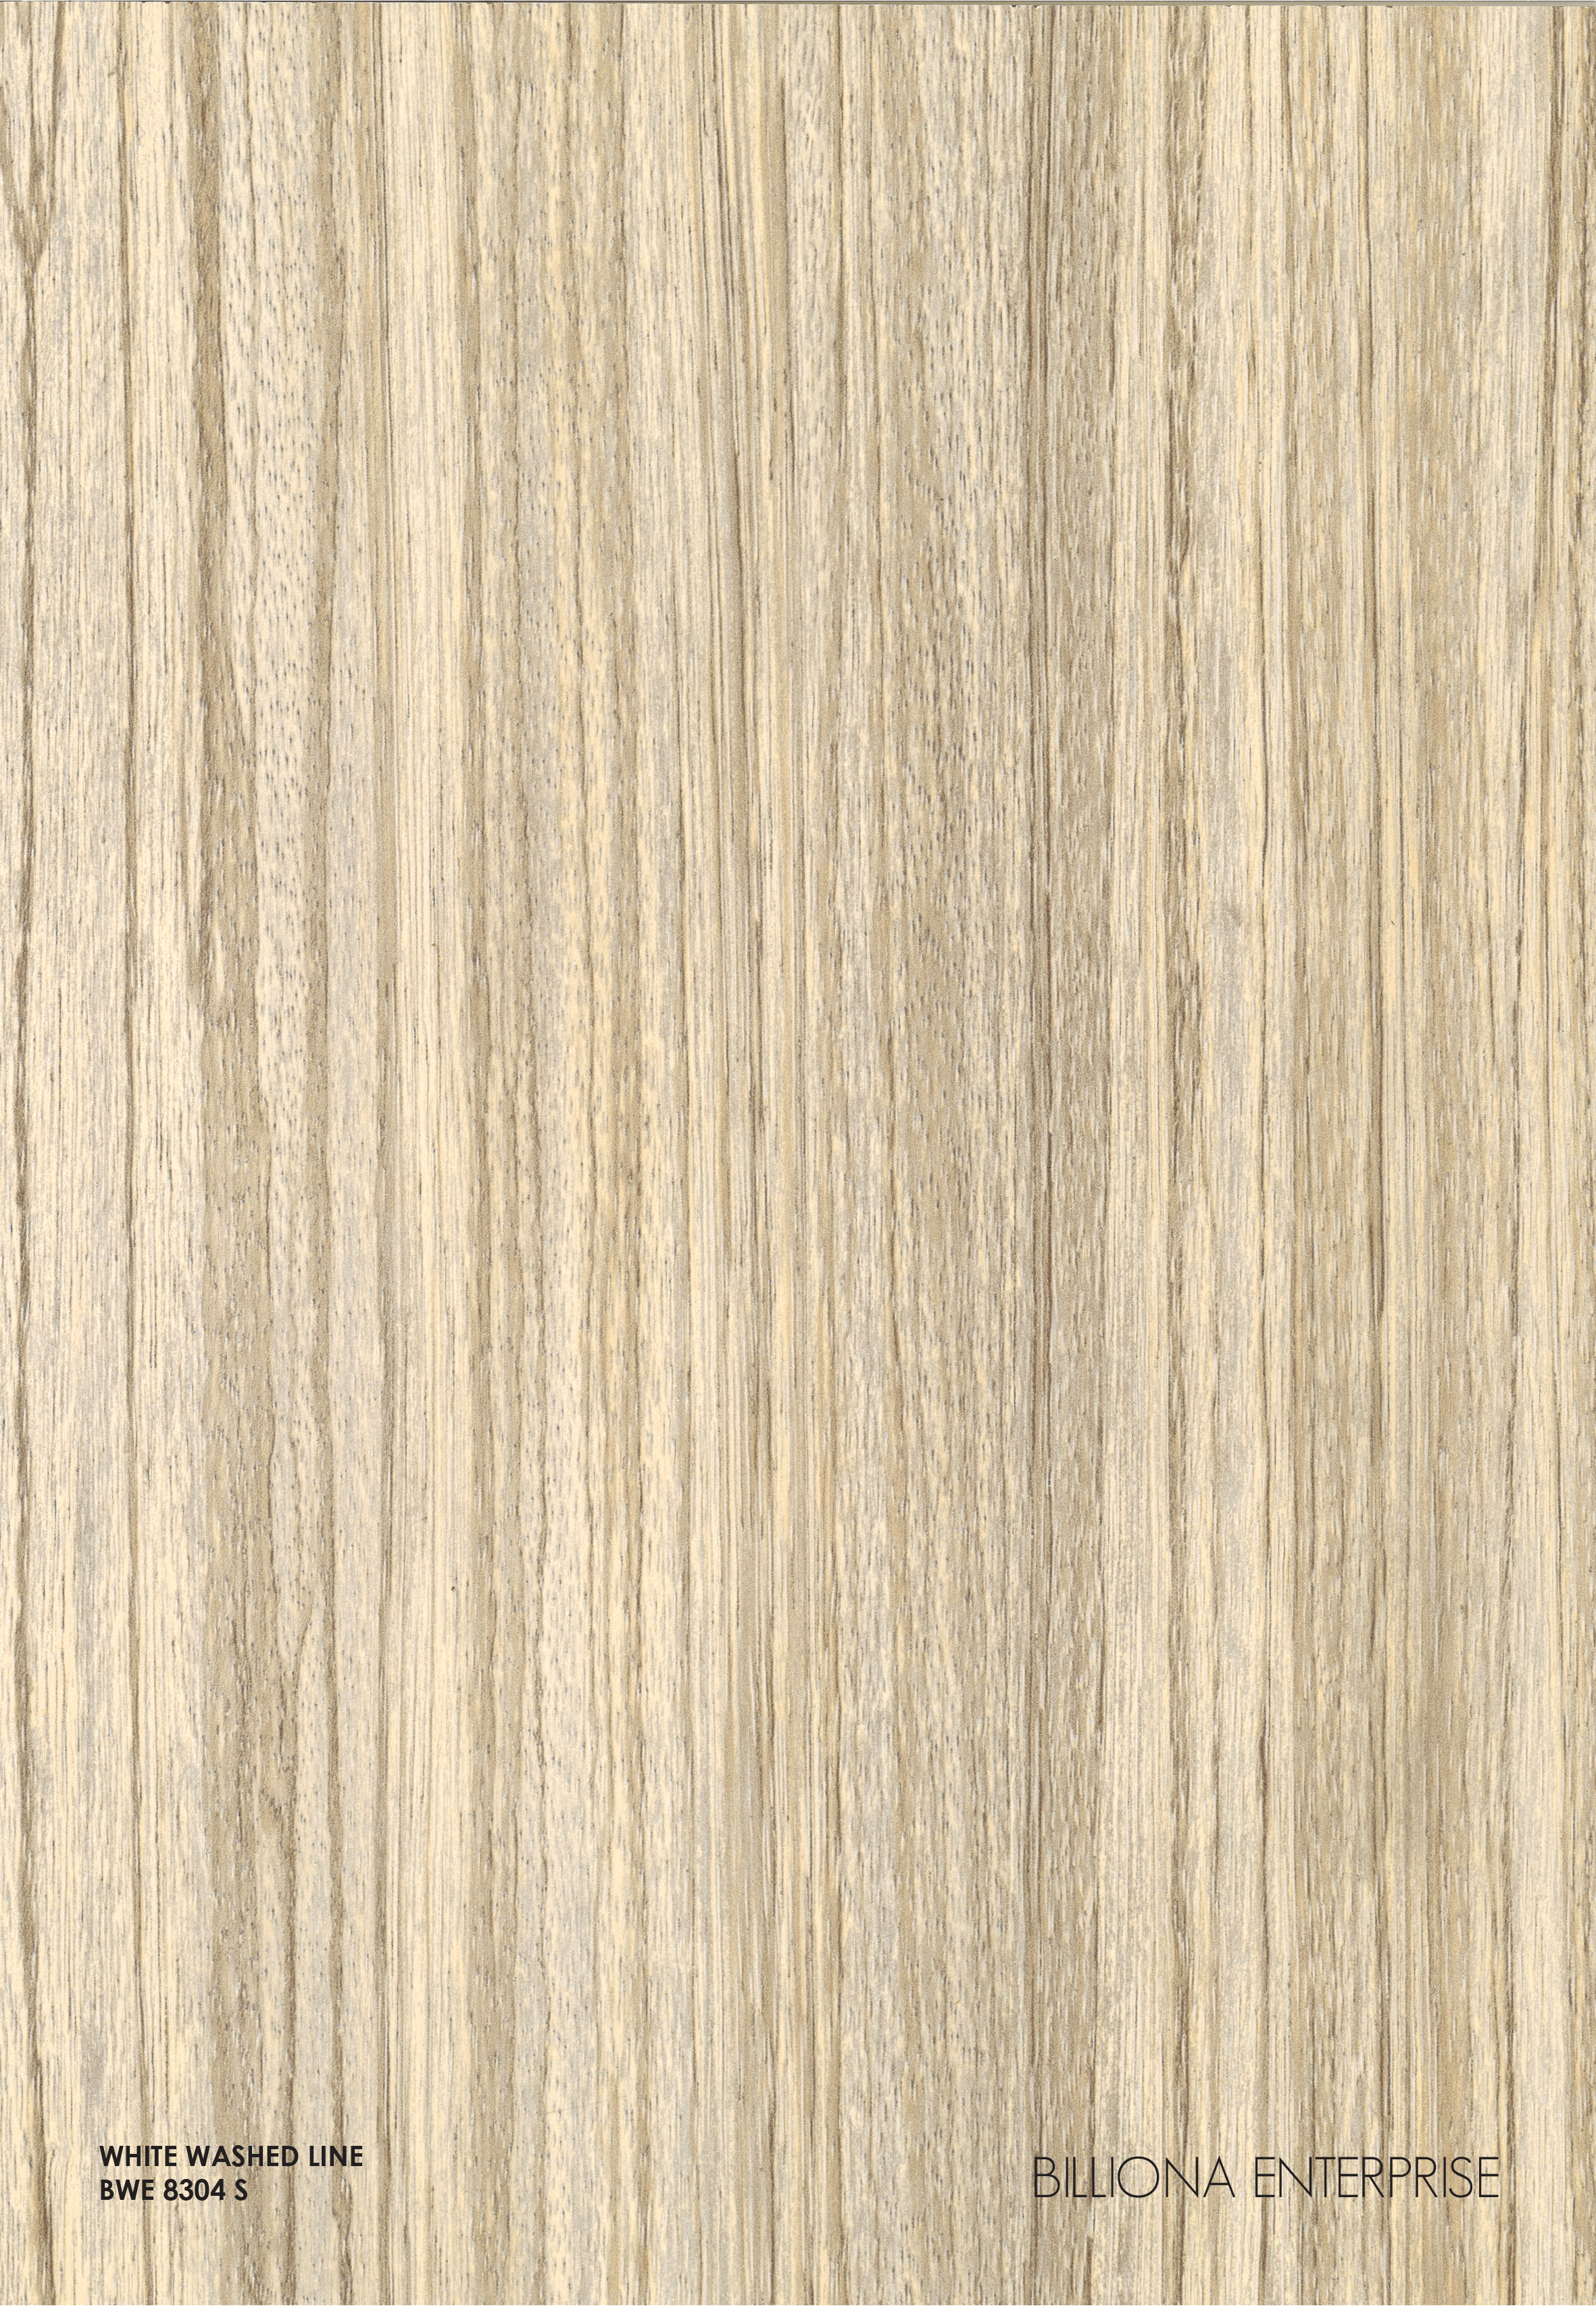 BWE 8304 S - White Washed Lime High Pressure Laminate (HPL), Billiona Enterprise Singapore